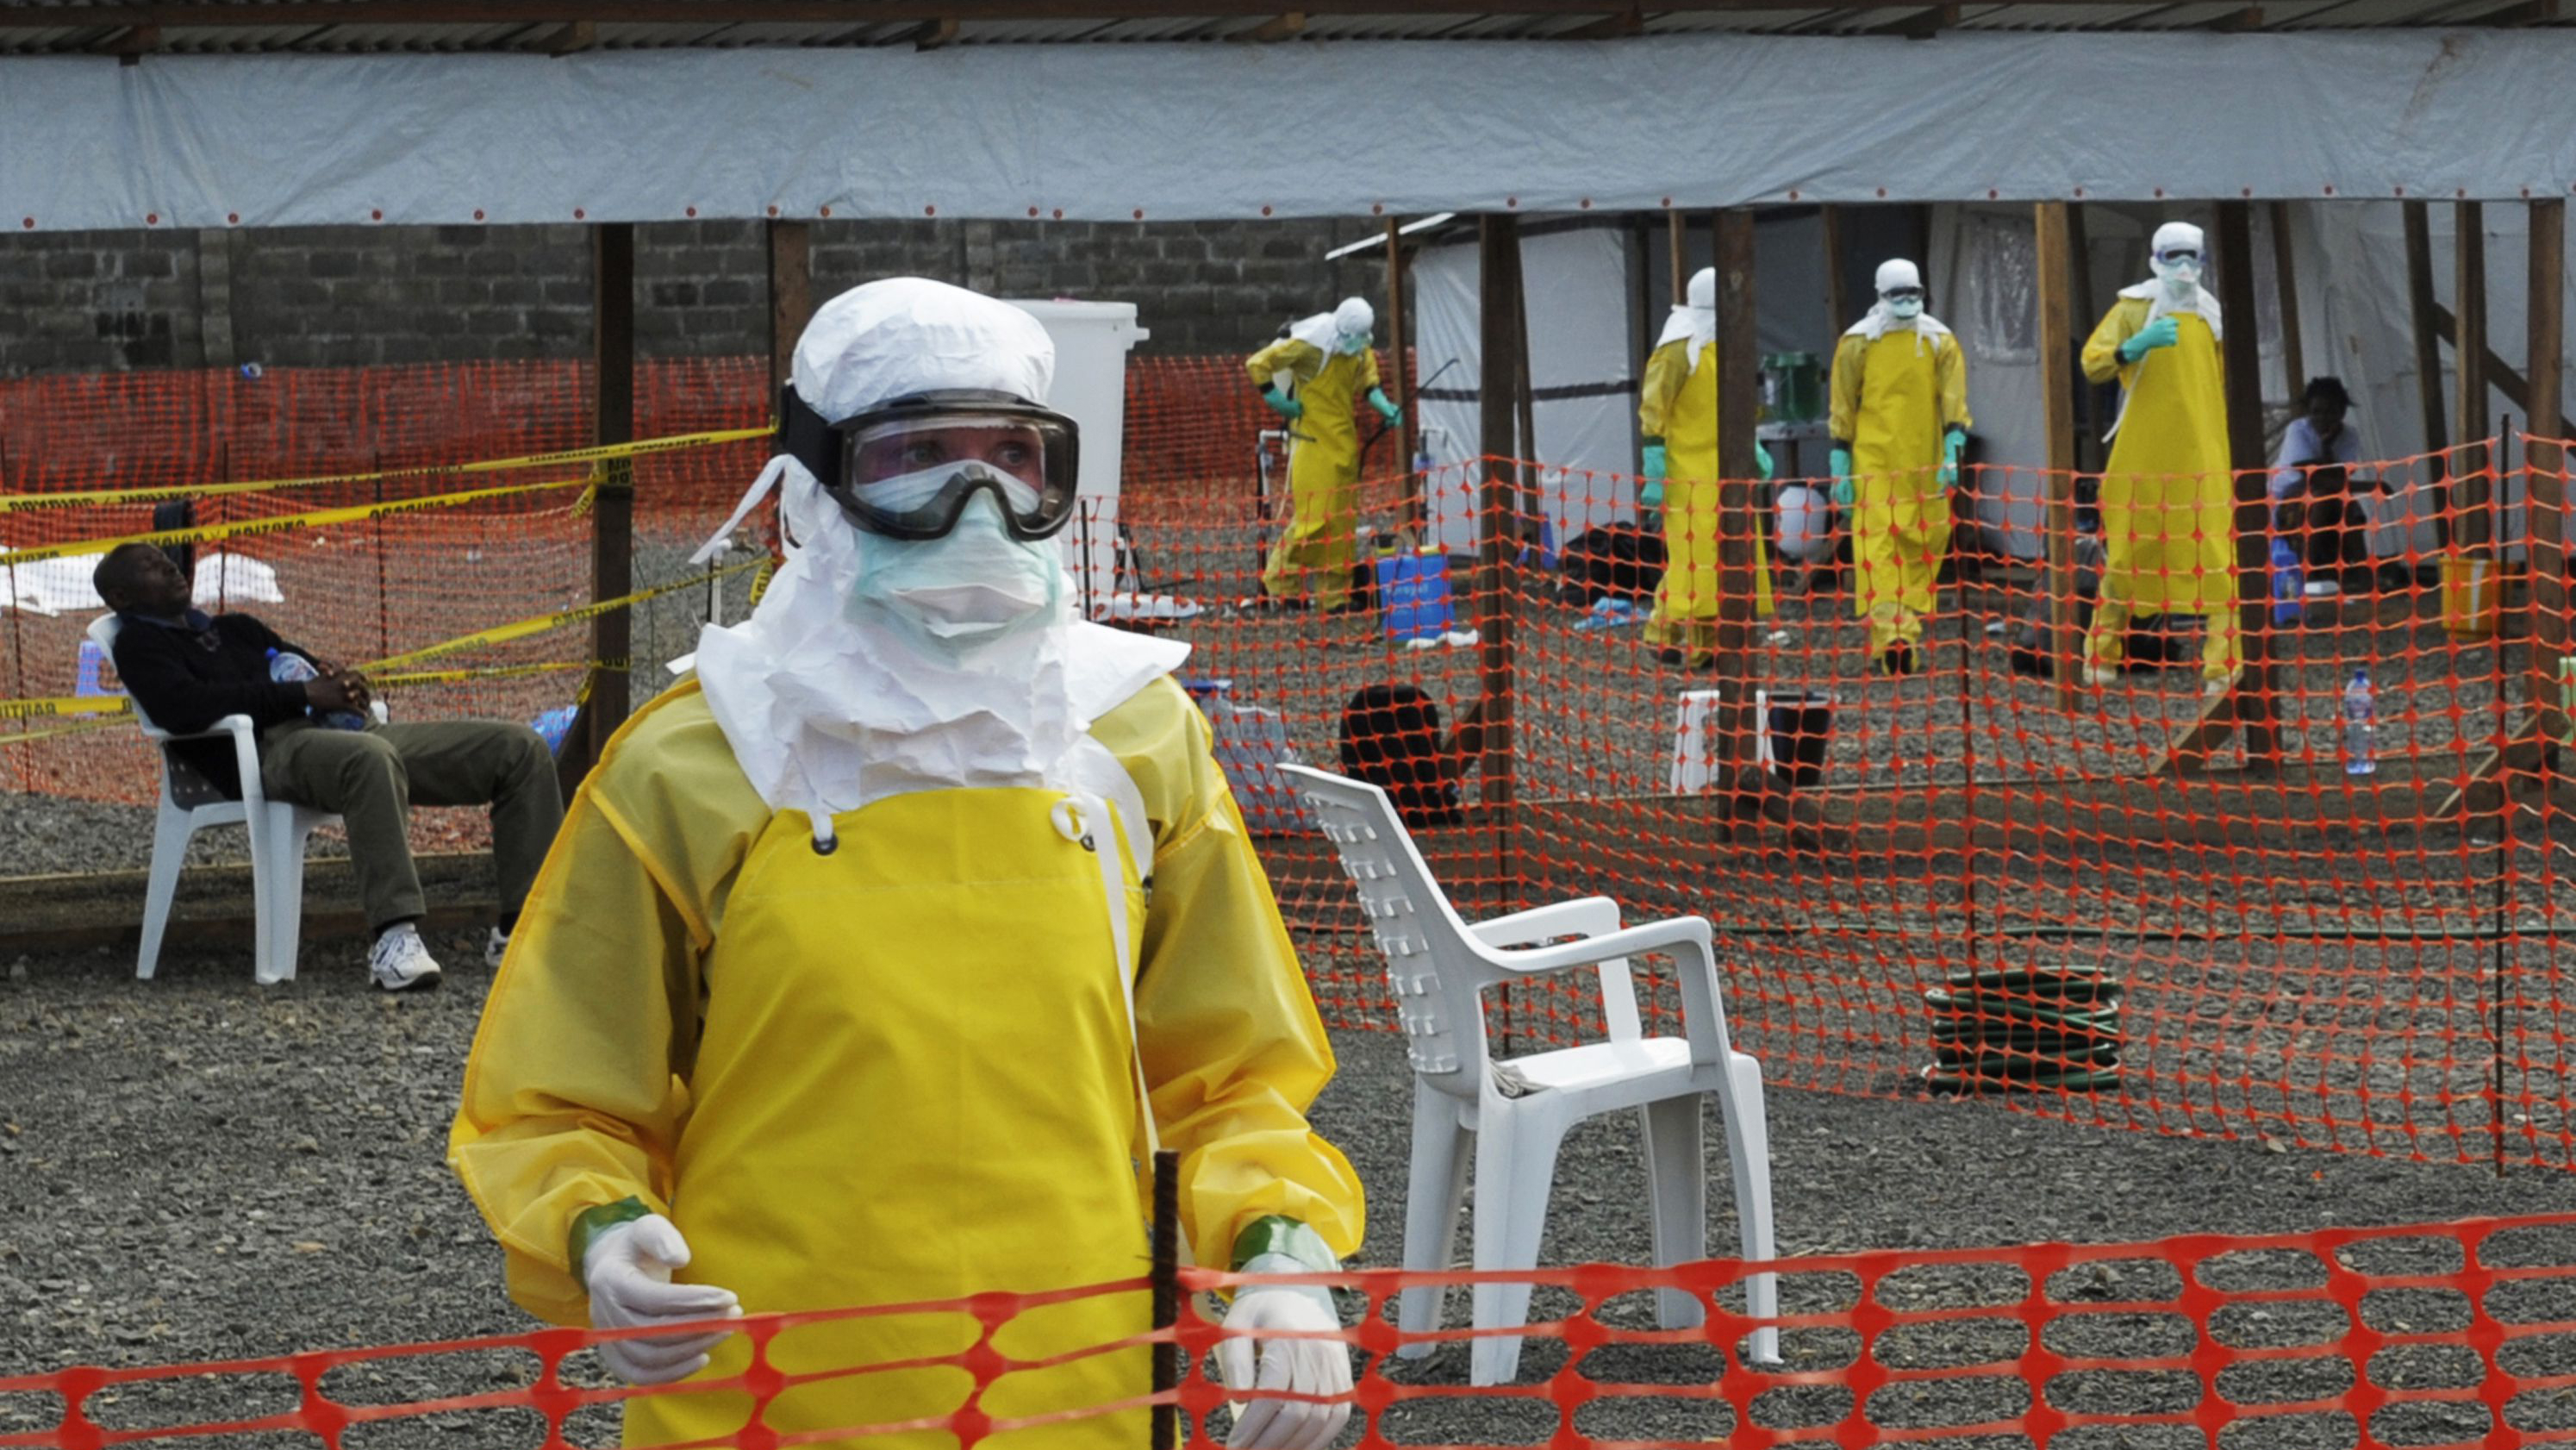 Medicins Sans Frontieres (MSF) health workers prepare at ELWA's isolation camp during the visit of Senior United Nations (U.N.) System Coordinator for Ebola David Nabarro, at the camp in Monrovia August 23, 2014.As the outbreak has spread across borders from its initial epicentre in Guinea, governments in the region have introduced increasingly strict travel restrictions. Ivory Coast has closed its land borders Guinea and Liberia to try to prevent the virus from crossing onto its territory, the government announced late on Friday. REUTERS/2Tango (LIBERIA - Tags: HEALTH SOCIETY DISASTER TPX IMAGES OF THE DAY)